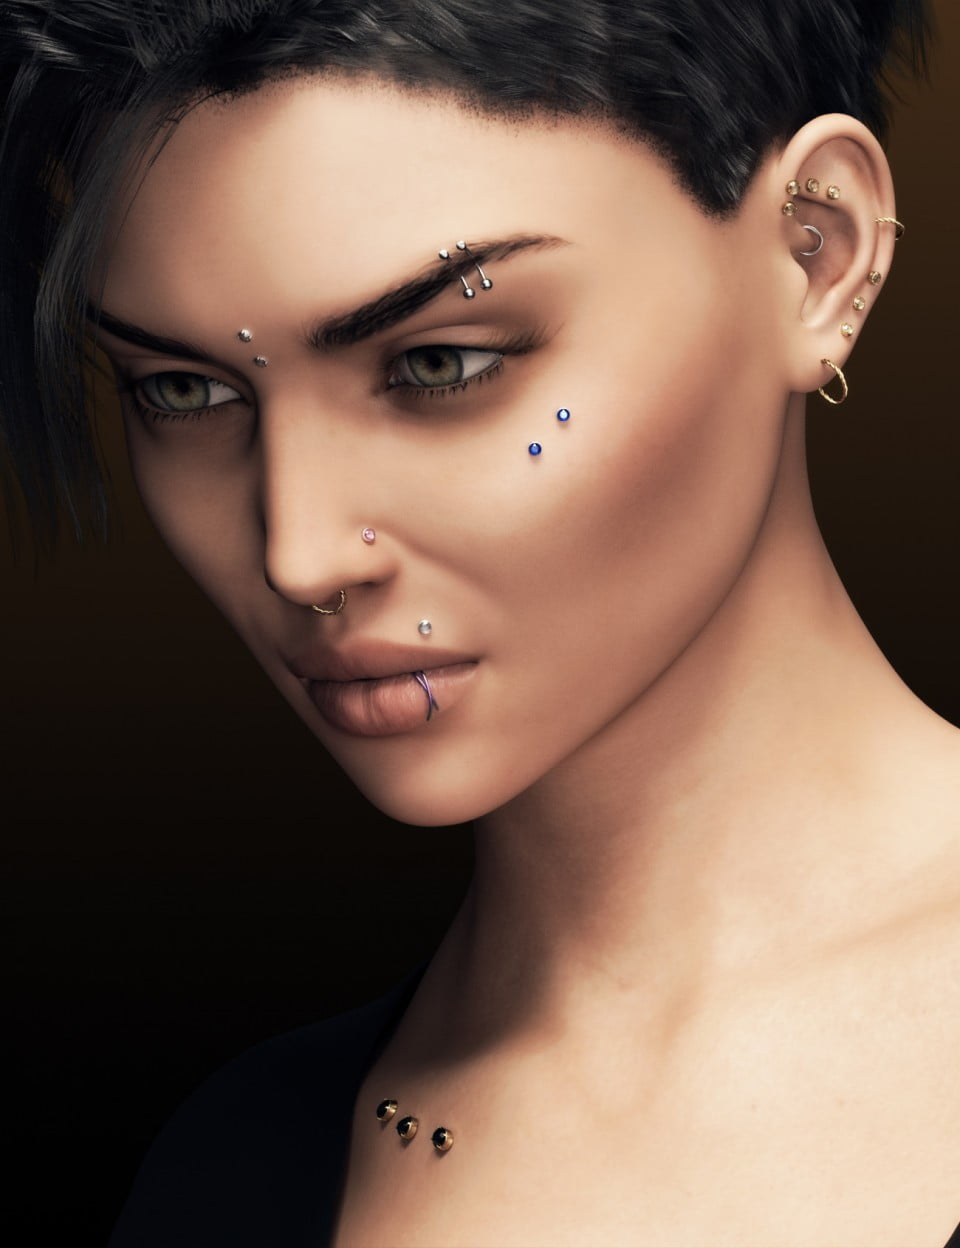 Alternative Piercing Pack for Genesis 8 Female